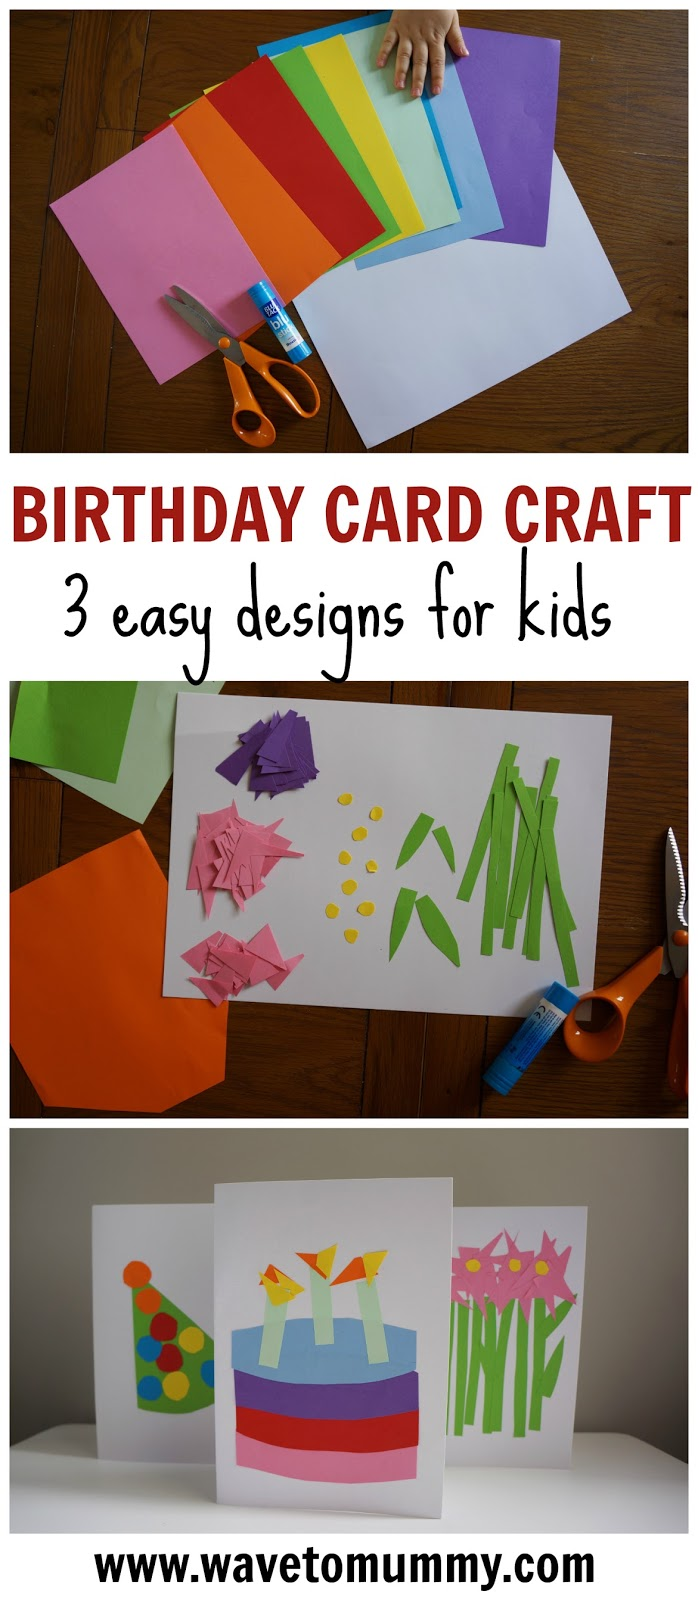 Three very easy birthday cards to craft with kids - all you need is card, coloured paper, glue and scissors! Picture-based tutorial of a paper craft to do with kids - suitable for toddlers and older children.